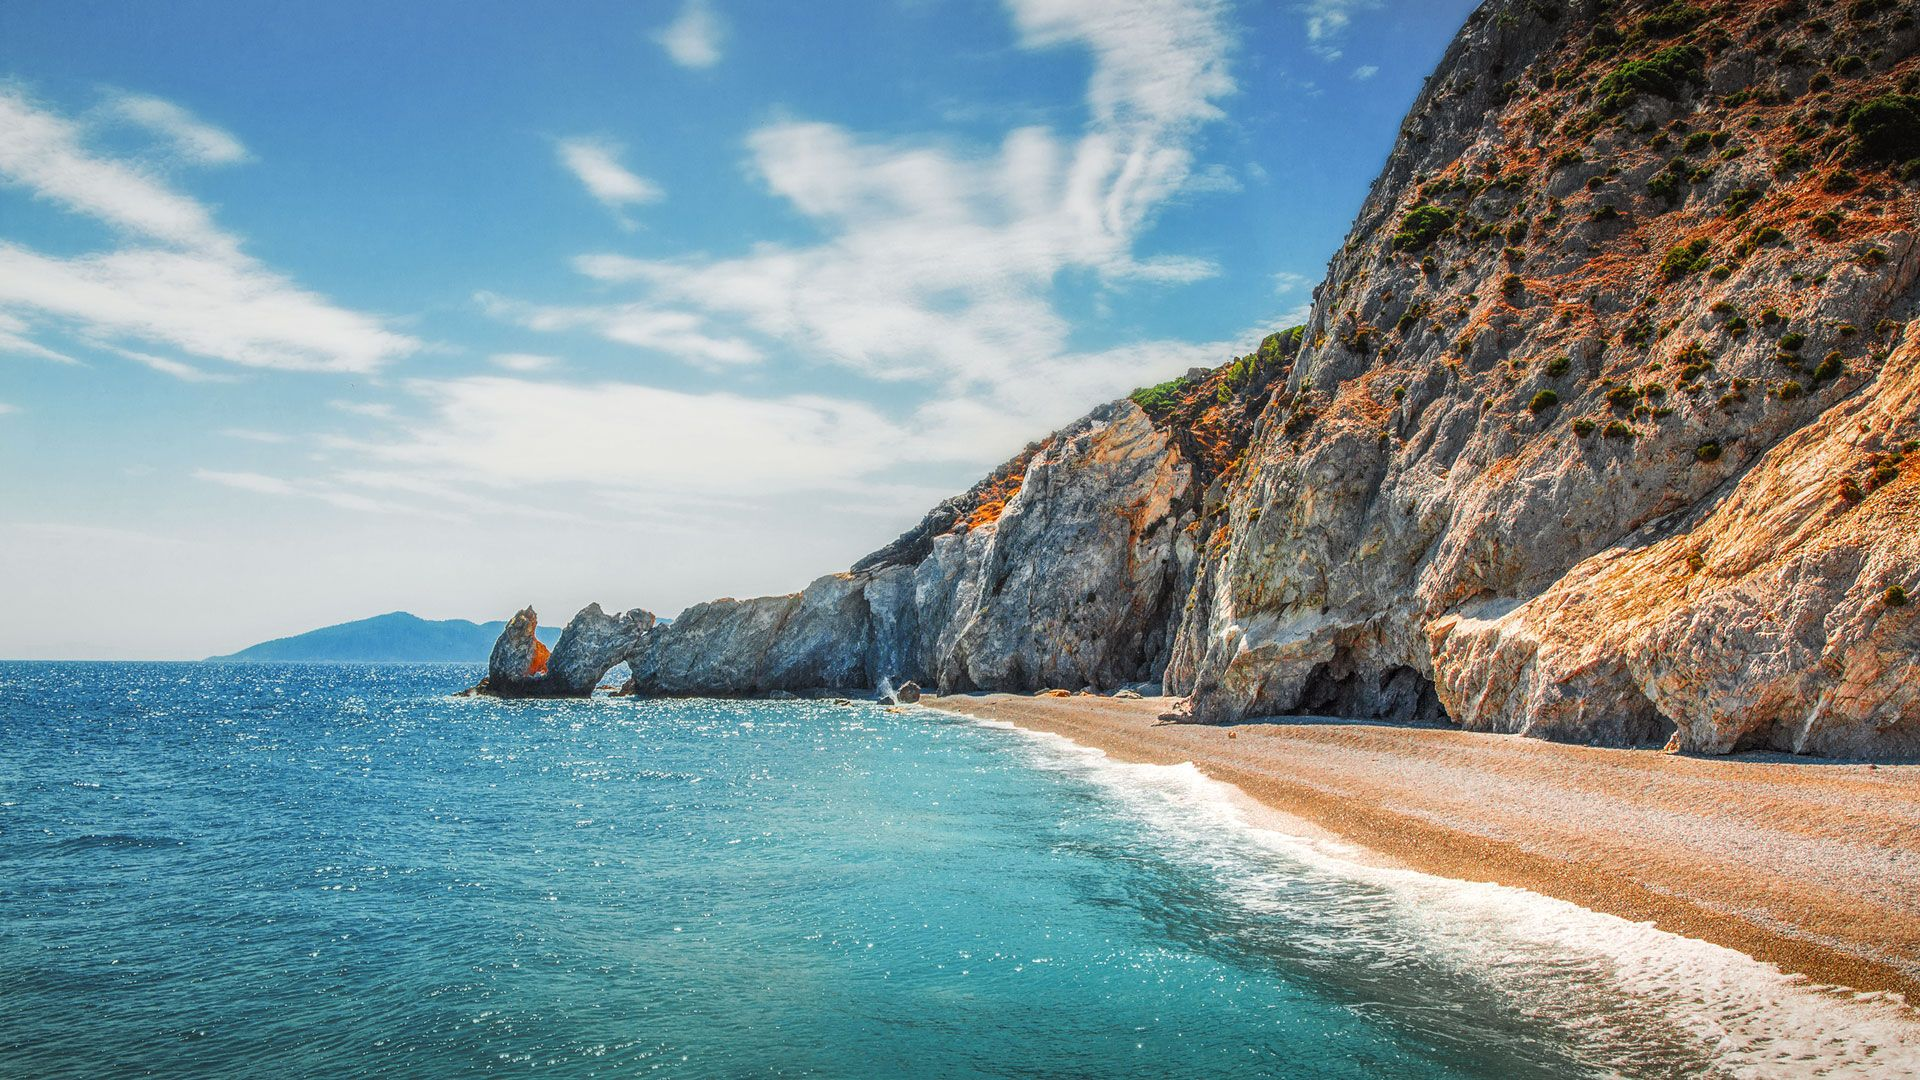 Lalaria beach on the Northeastern tip of Skiathos